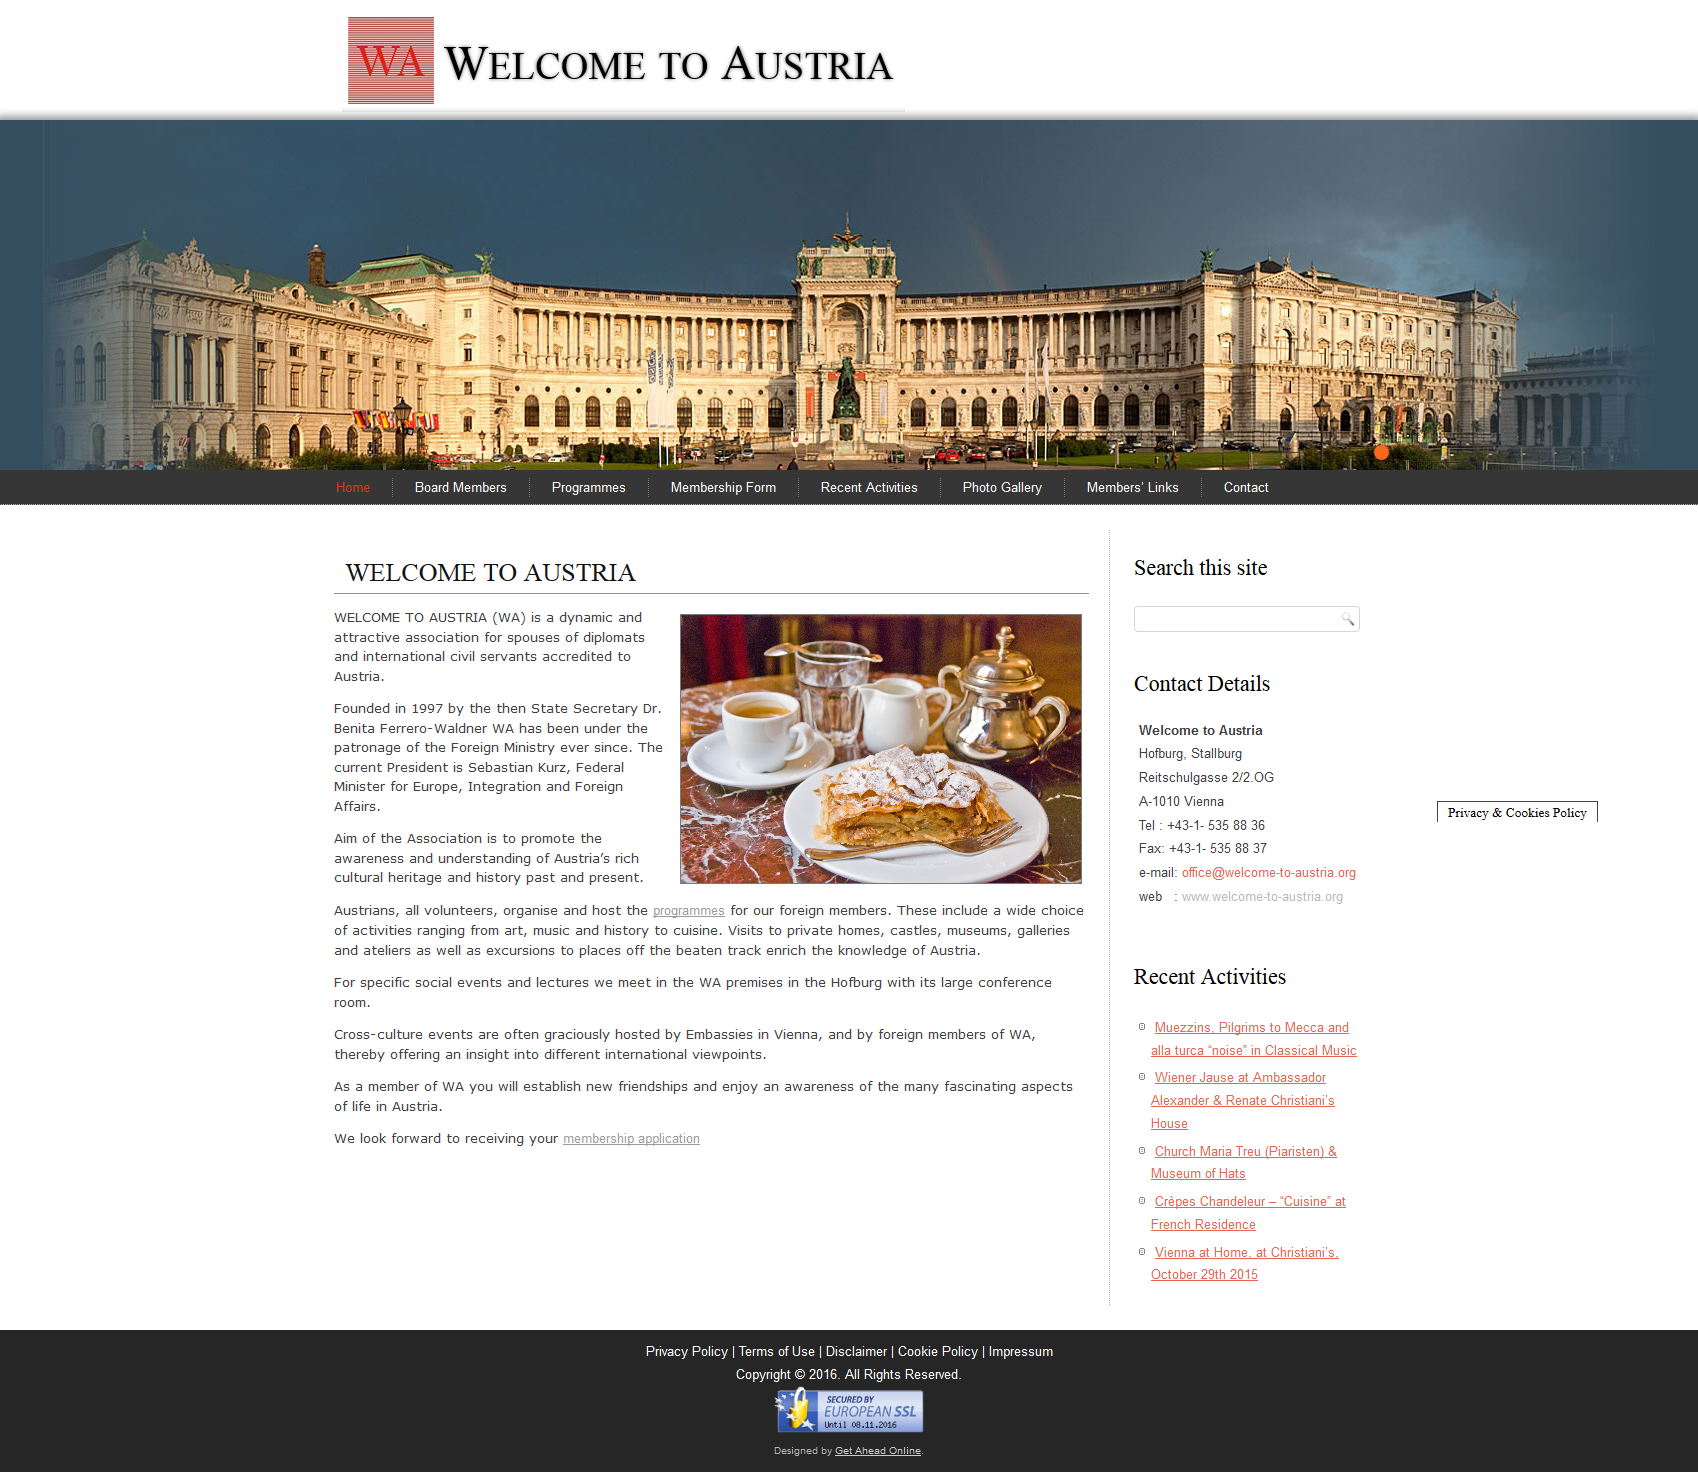 screenshot-www welcome-to-austria org 2016-03-13 12-02-10